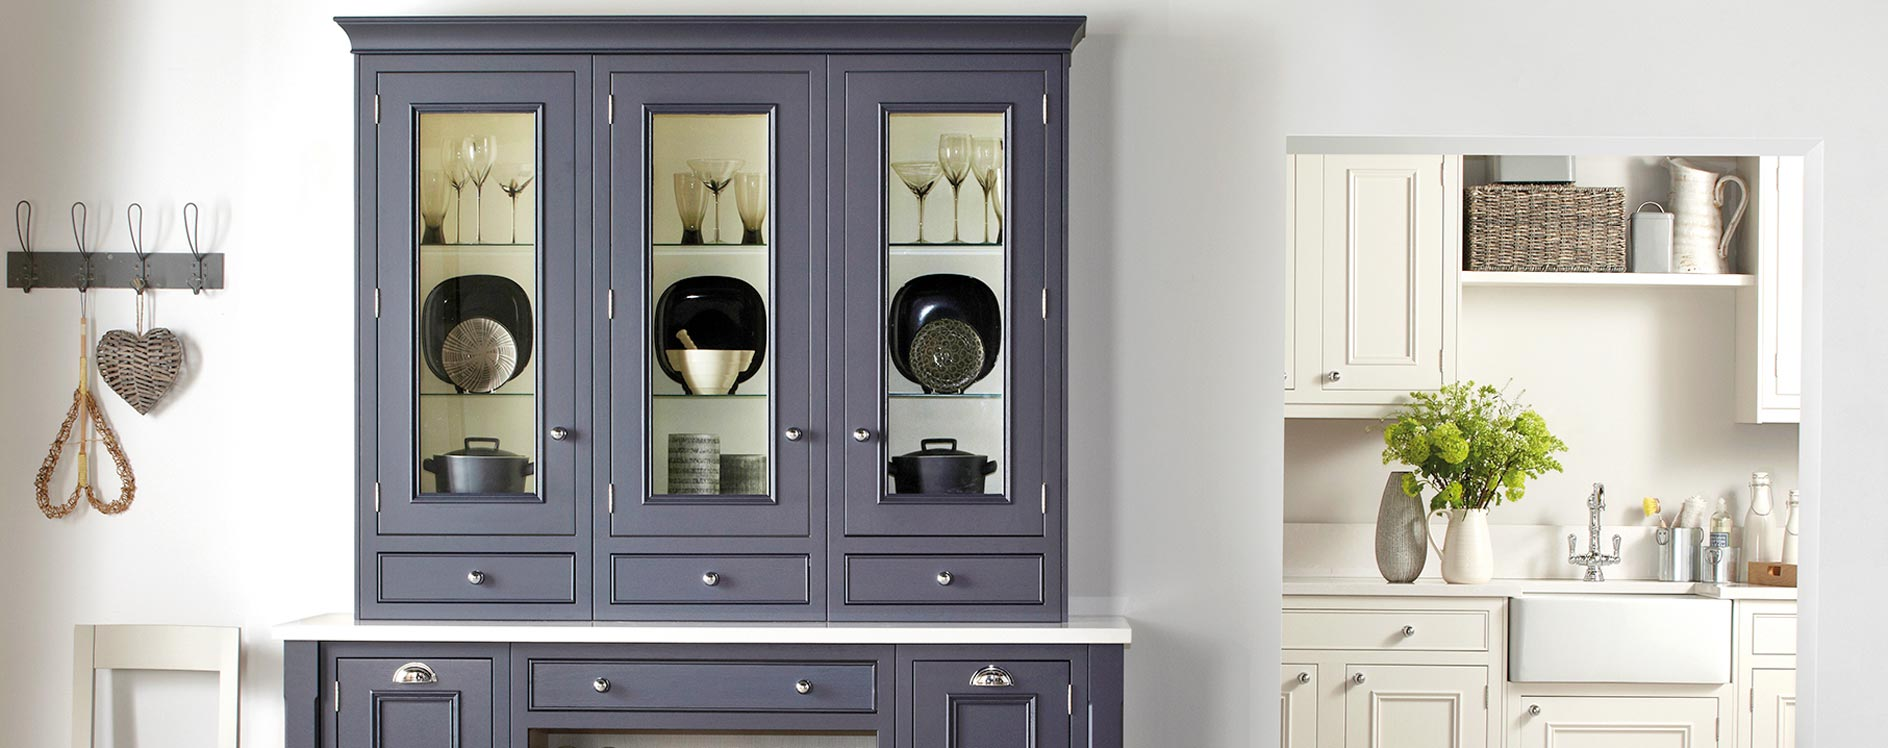 Salcombe Painted Timber English Made Kitchen in Ash-Charcoal-and-Chalk